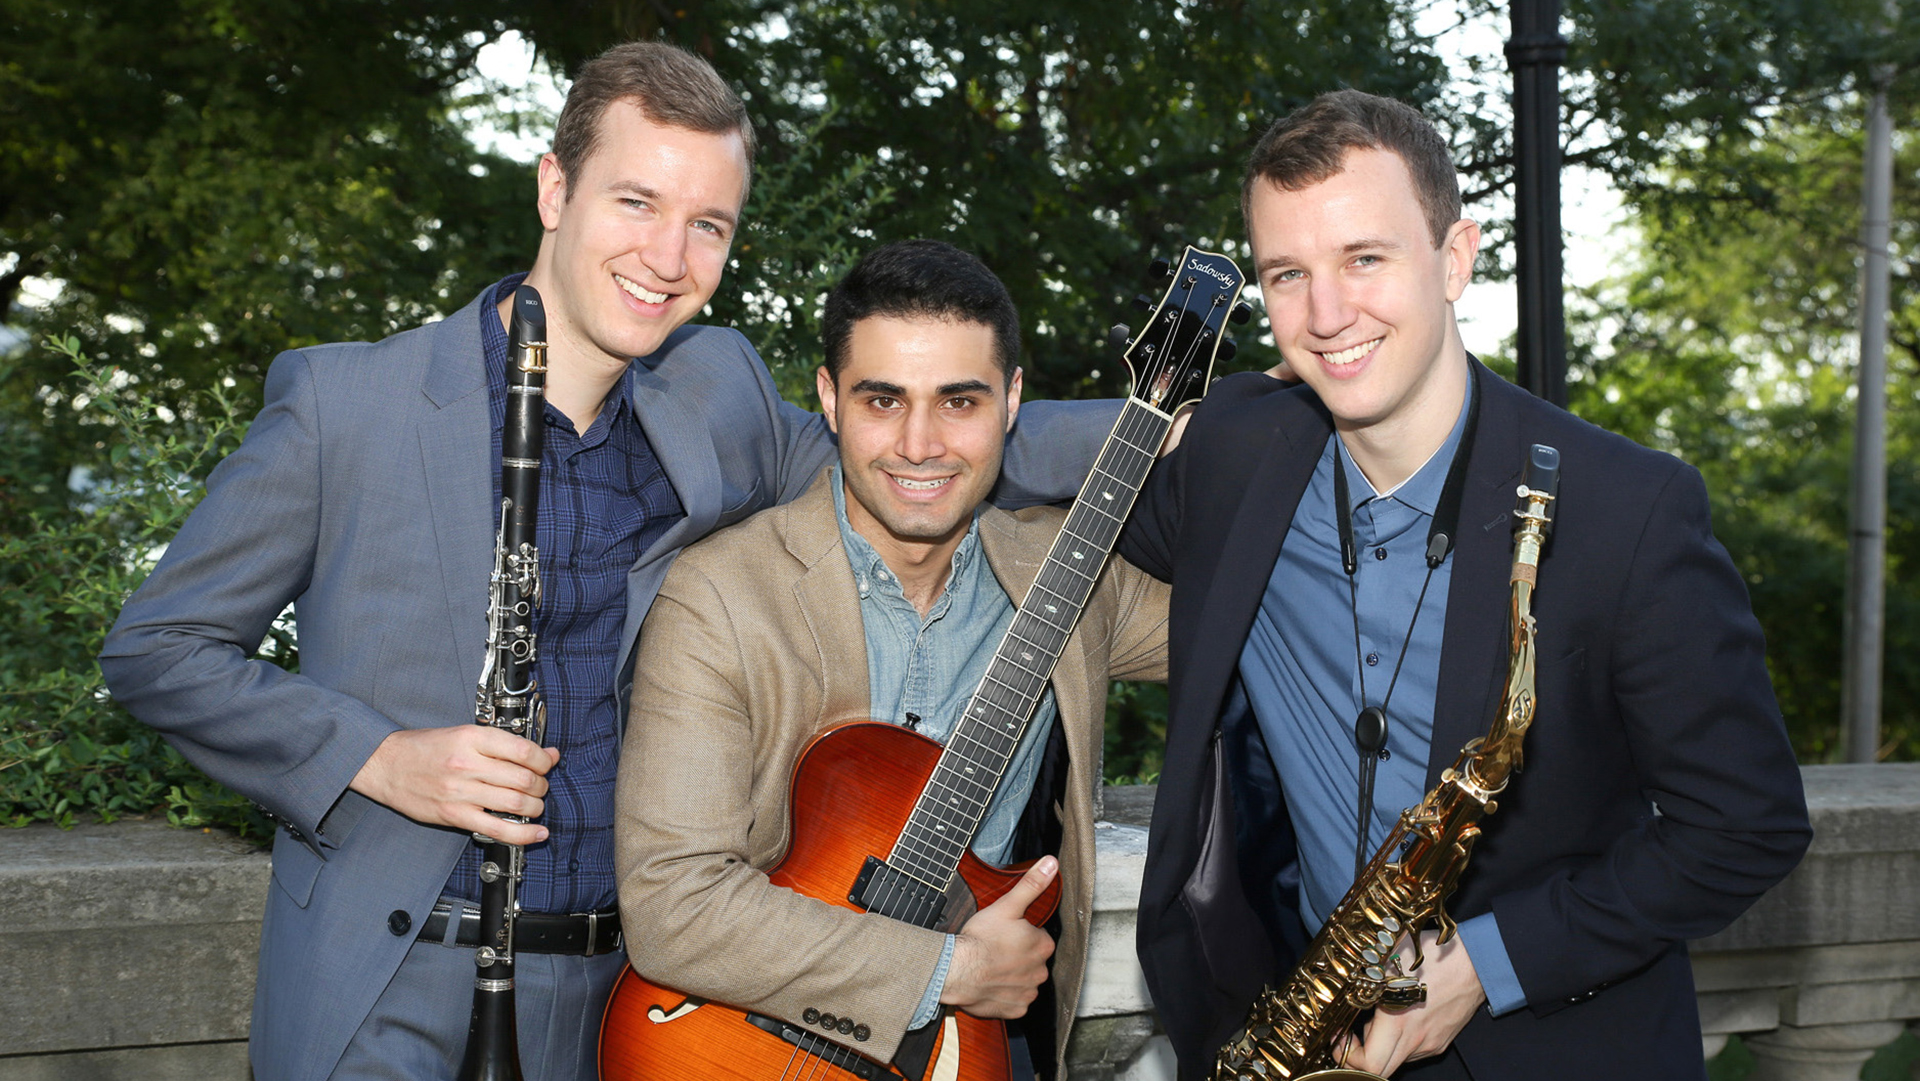 Jazz twins Peter and Will Anderson to perform for Chamber Music Amarillo concert series